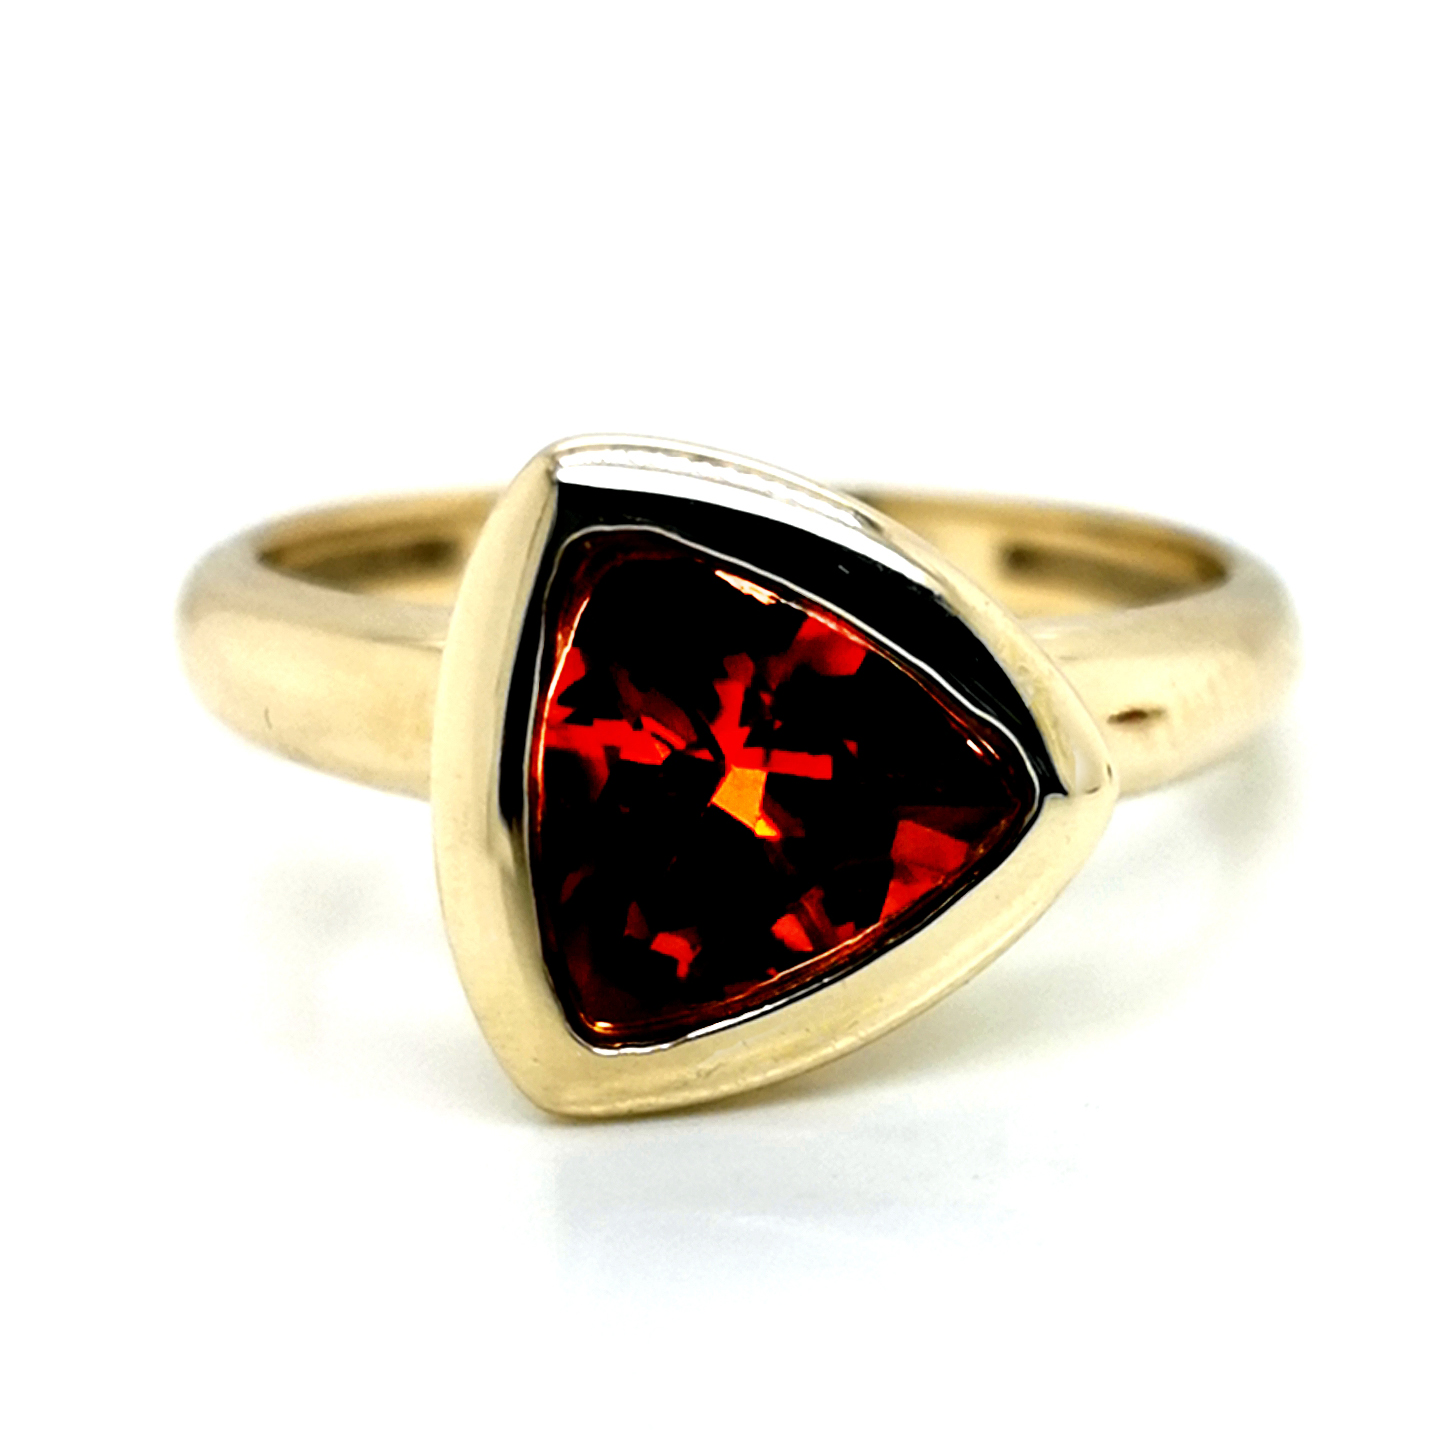 Andesin rot, facettiert, ca. 1,35 ct Edelstein, Ring aus 375 Gelbgold, Sogni d´oro